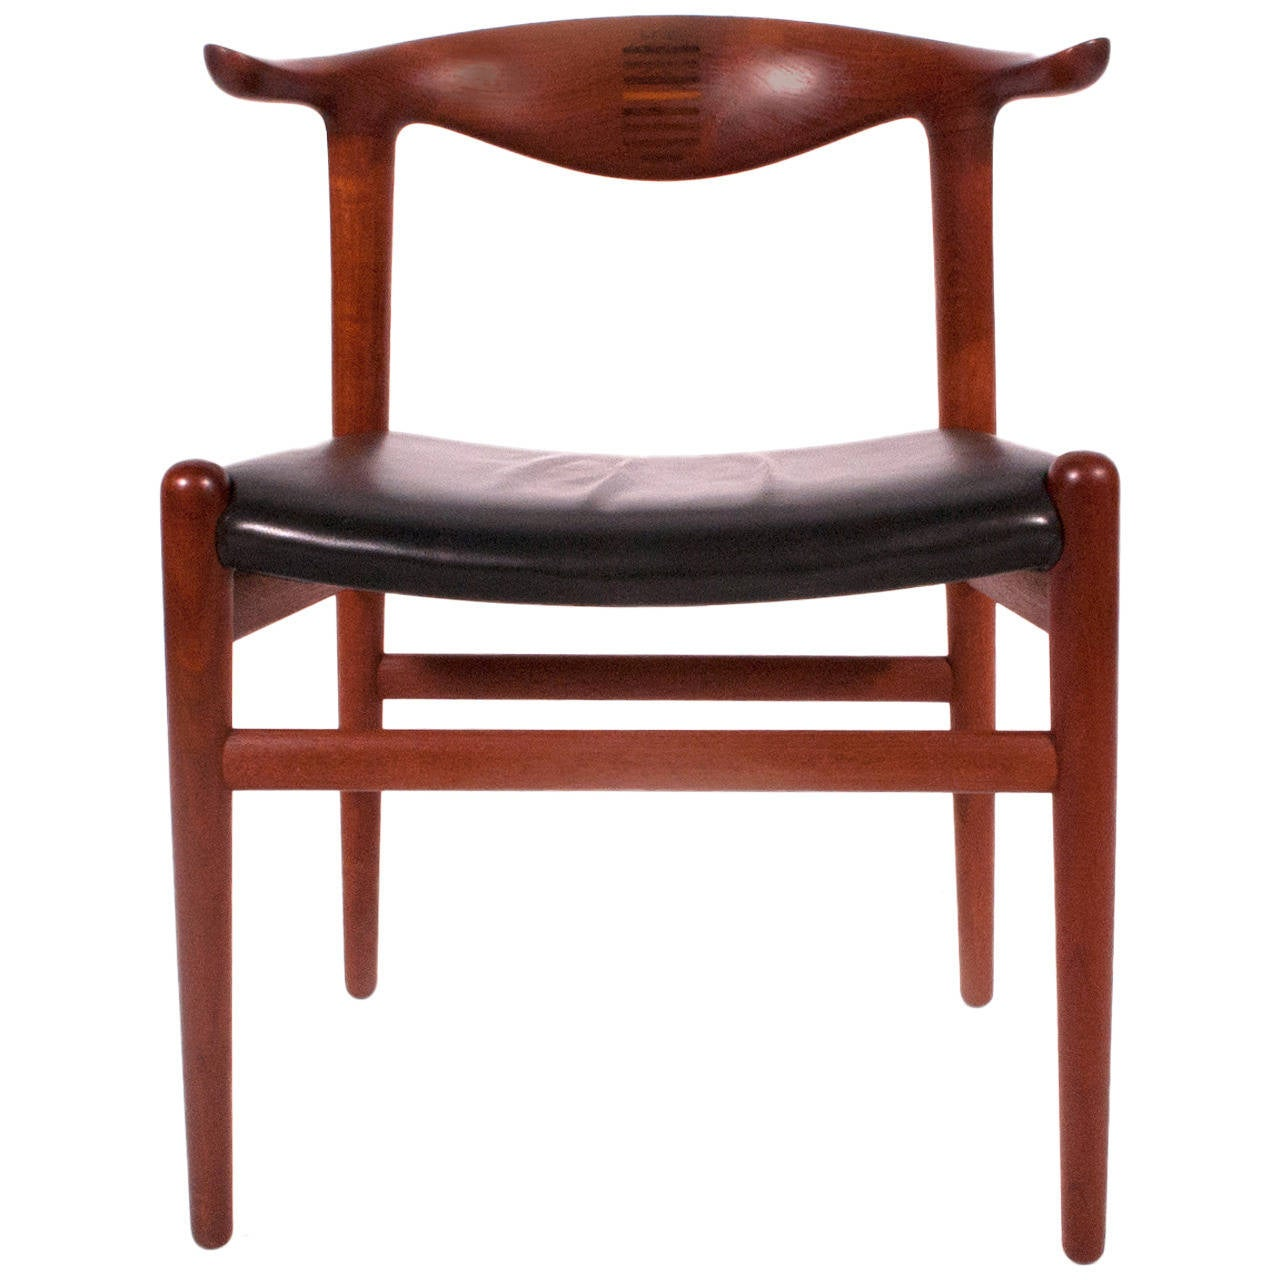 Cowhorn Chair by Hans Wegner 1953 For Sale at 1stdibs